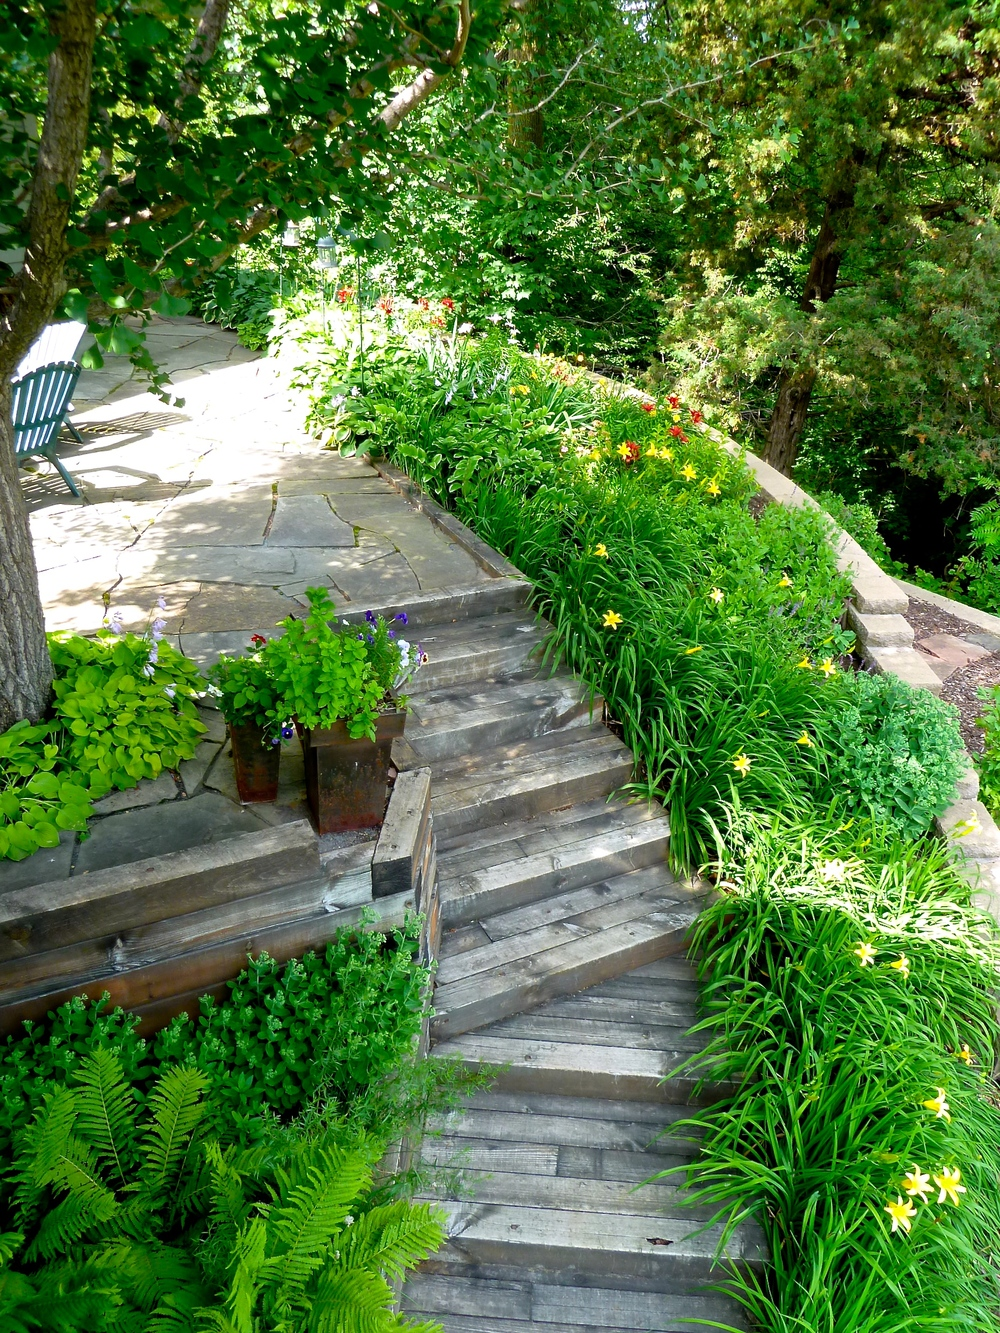 Stairway to a Heavenly Garden